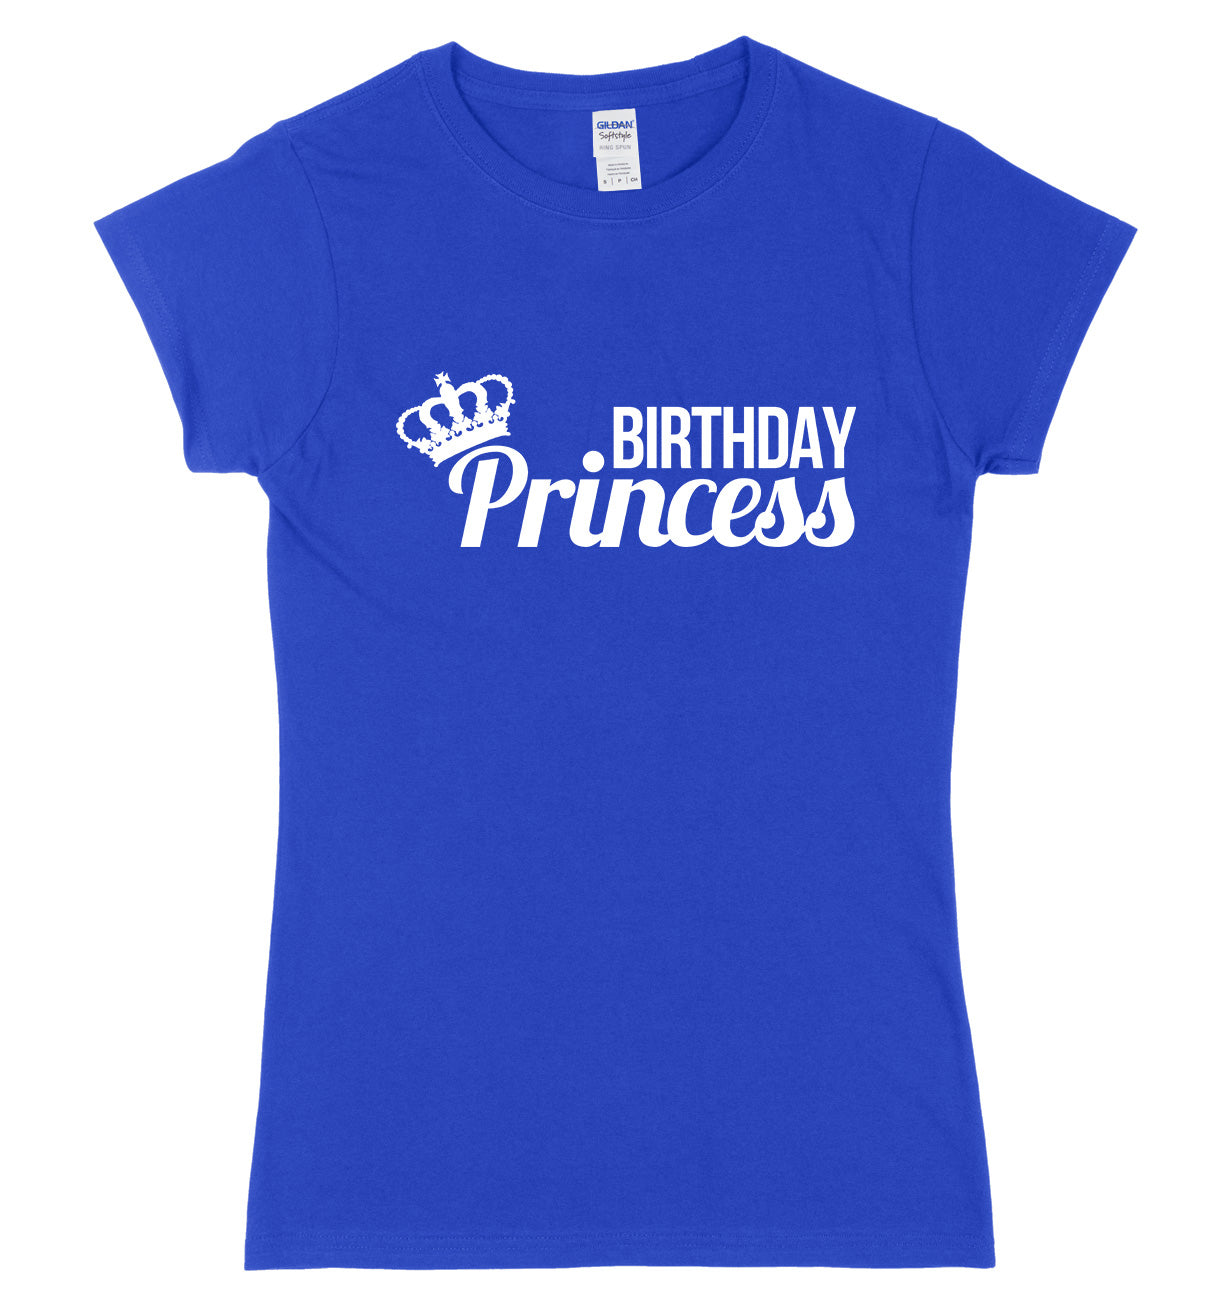 Birthday Princess Womens Ladies Slim Fit T-Shirt